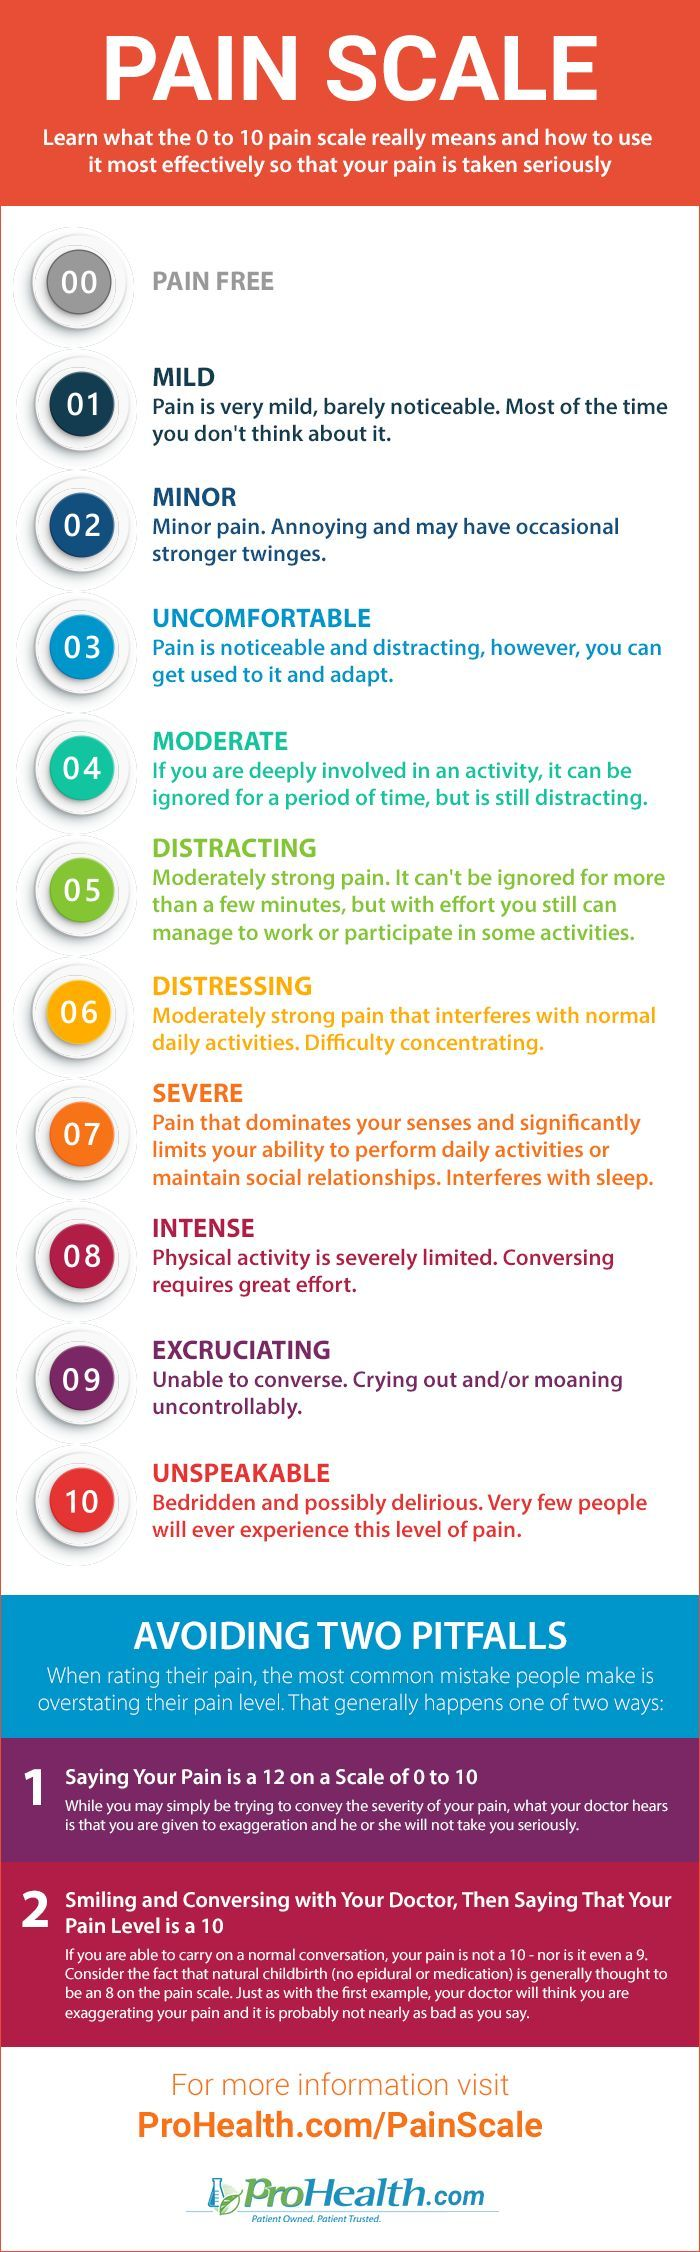 Learn what the 0 to 10 pain scale really means and how to use it most effectively so that your pain is taken seriously. #fibromyalgia